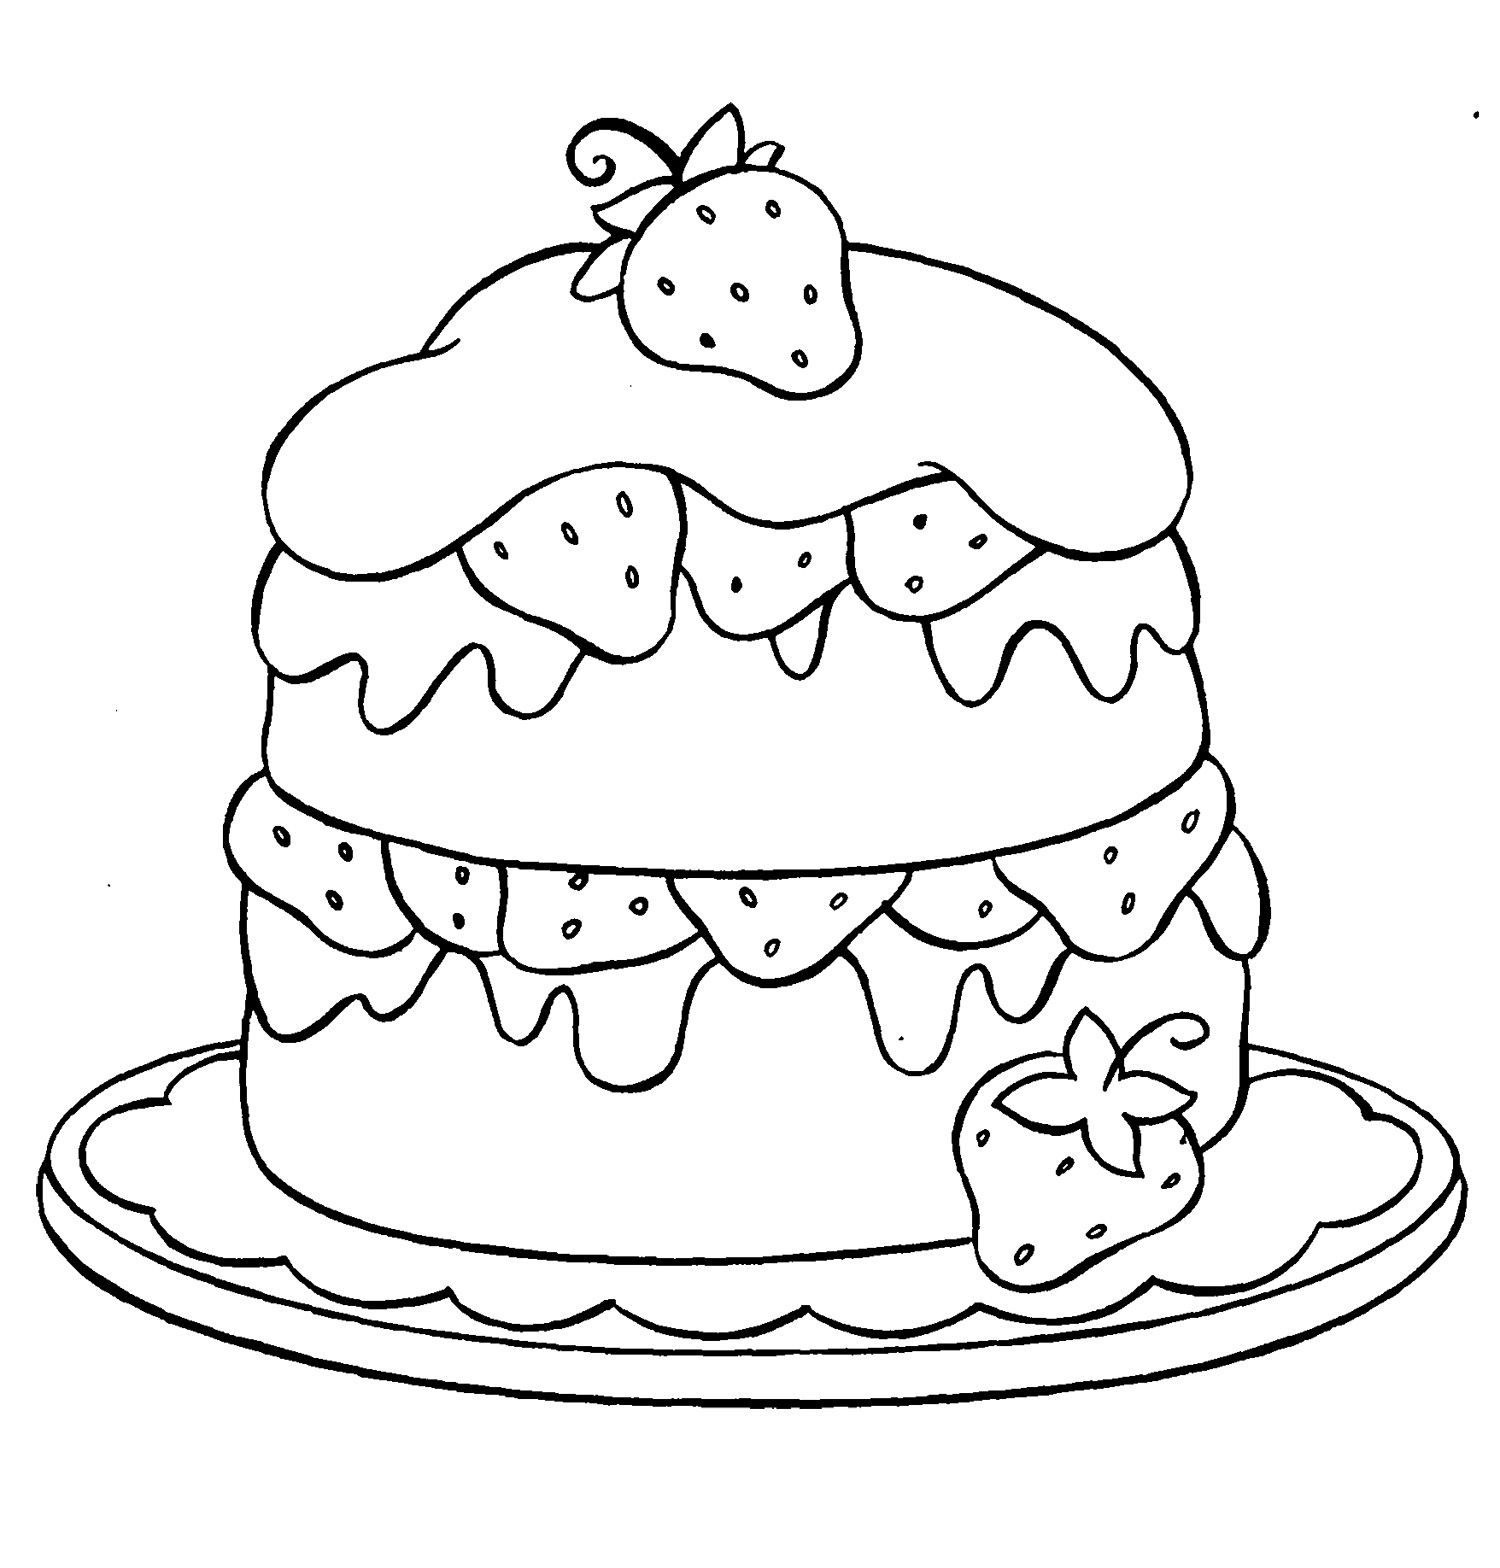 Cute Cake Drawing Cupcake Coloring Pages Food Coloring Pages